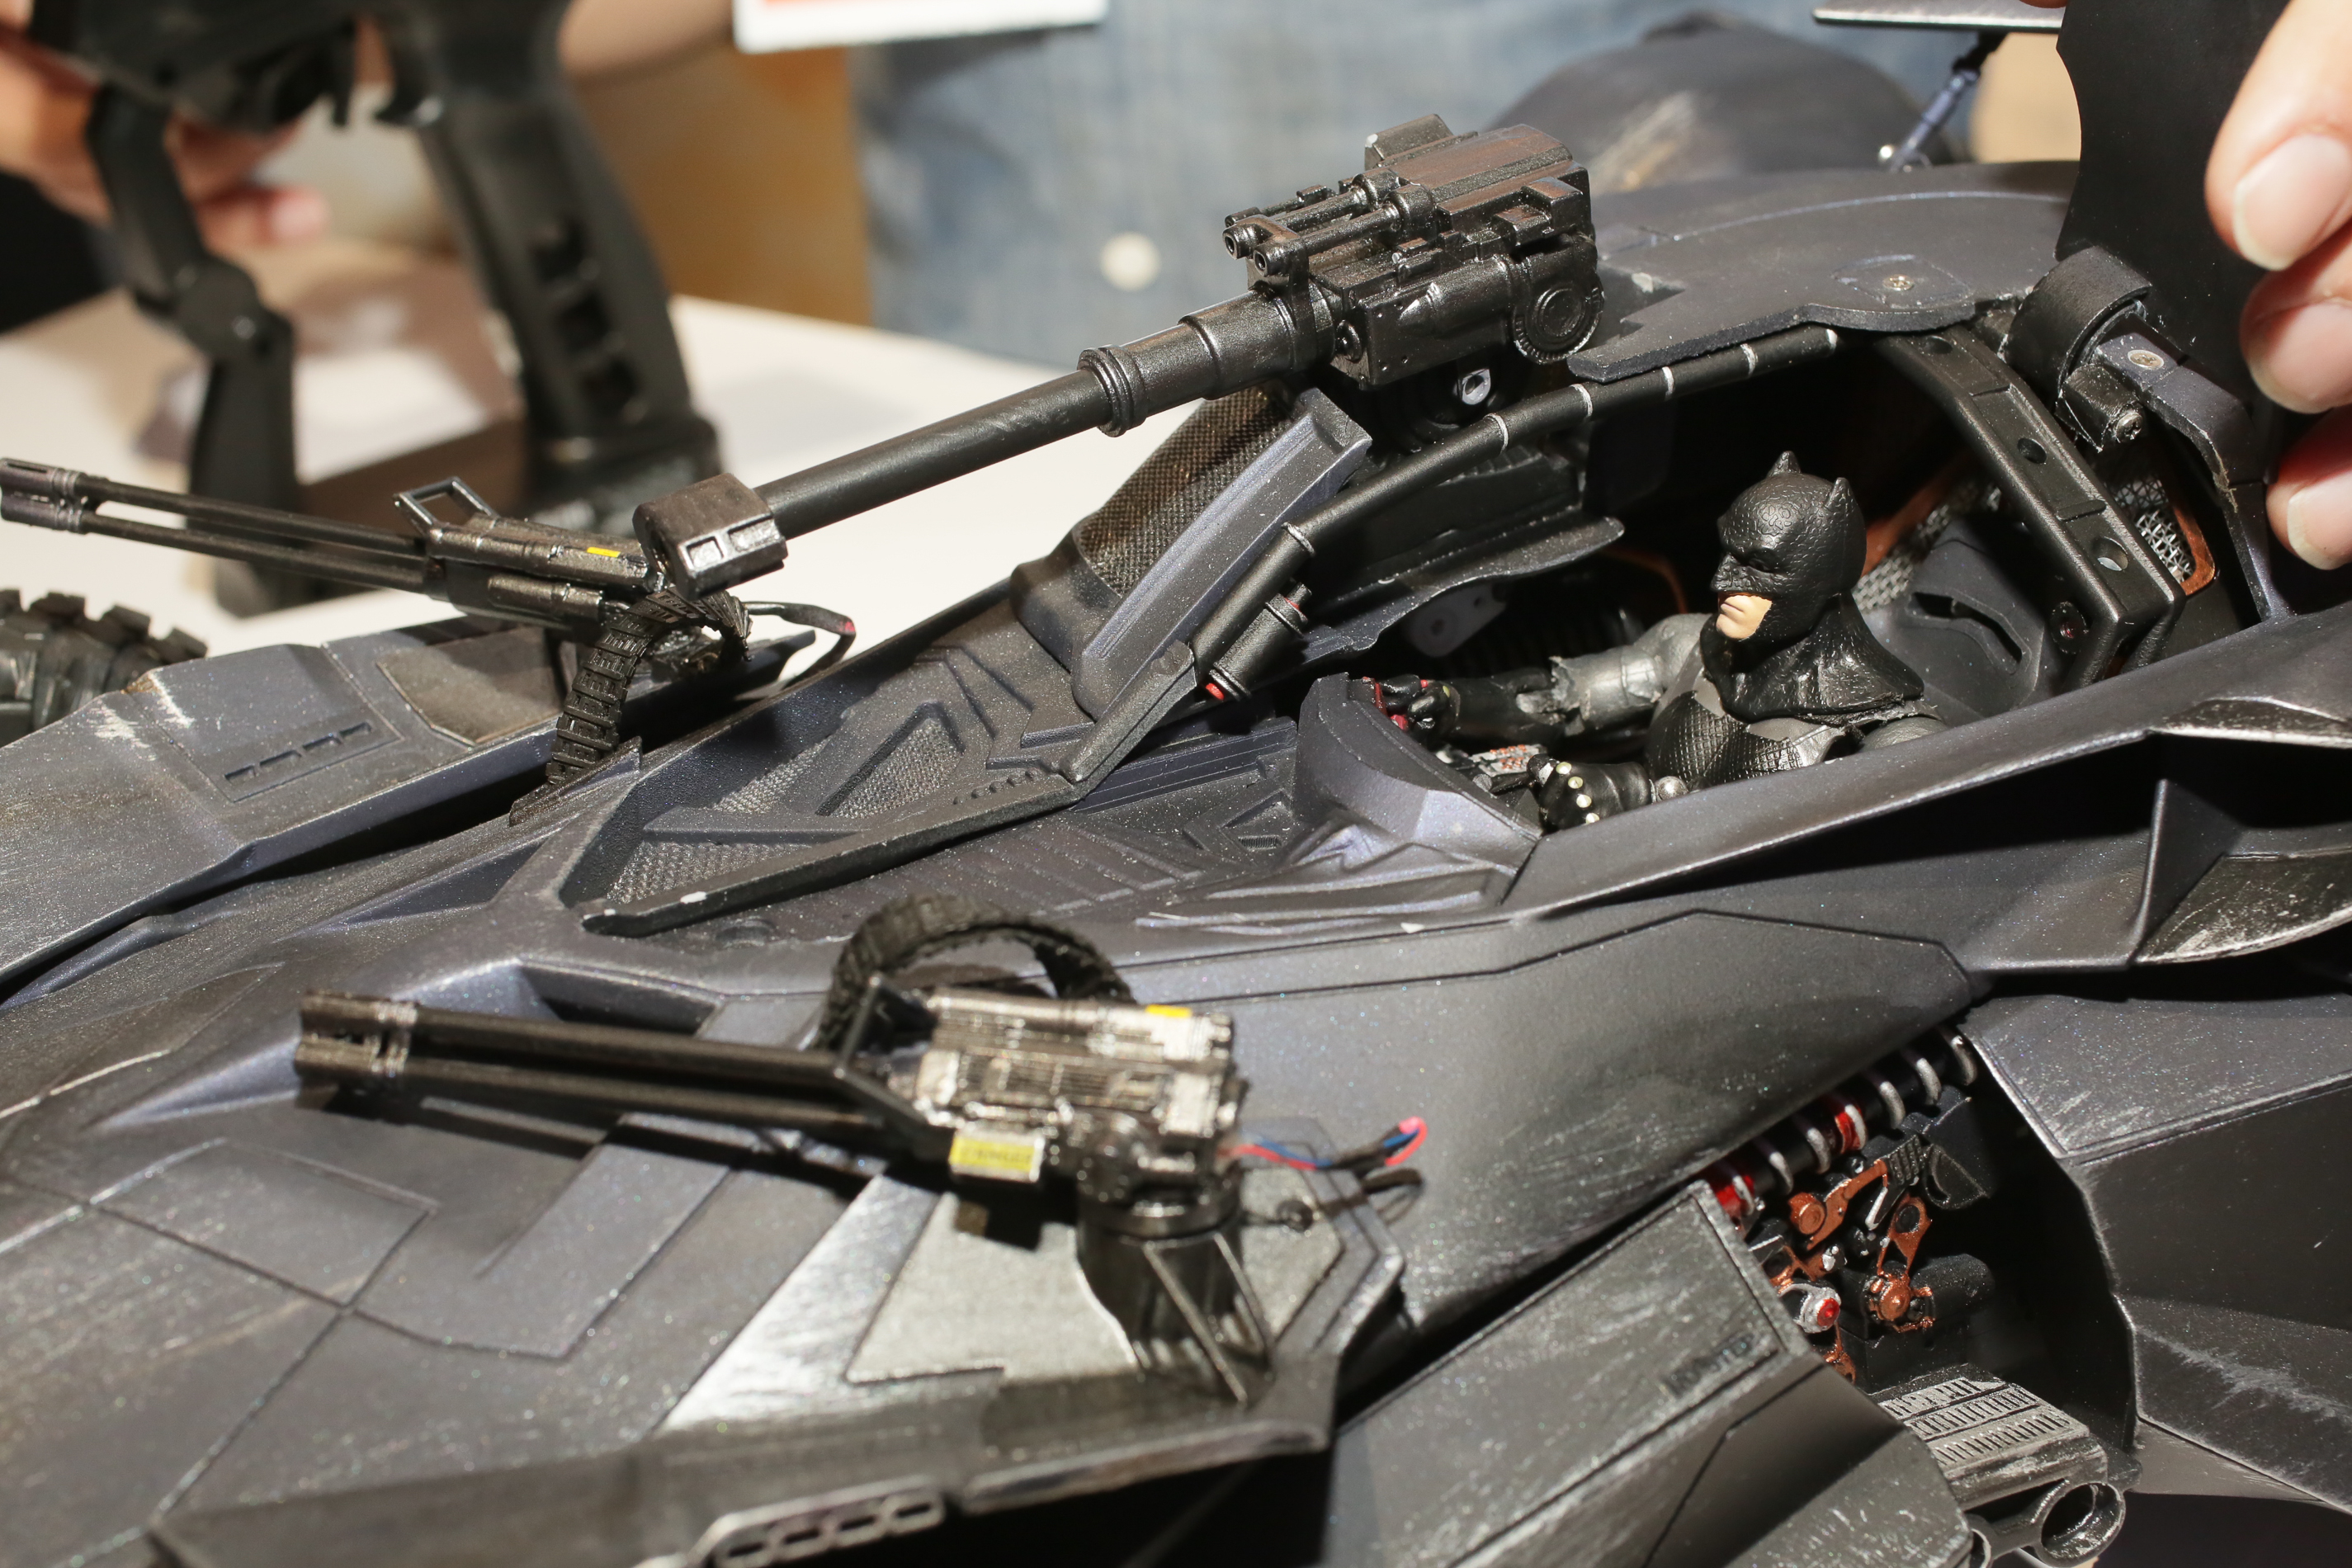 Get A Detailed Look At The Batmobile In Justice League From